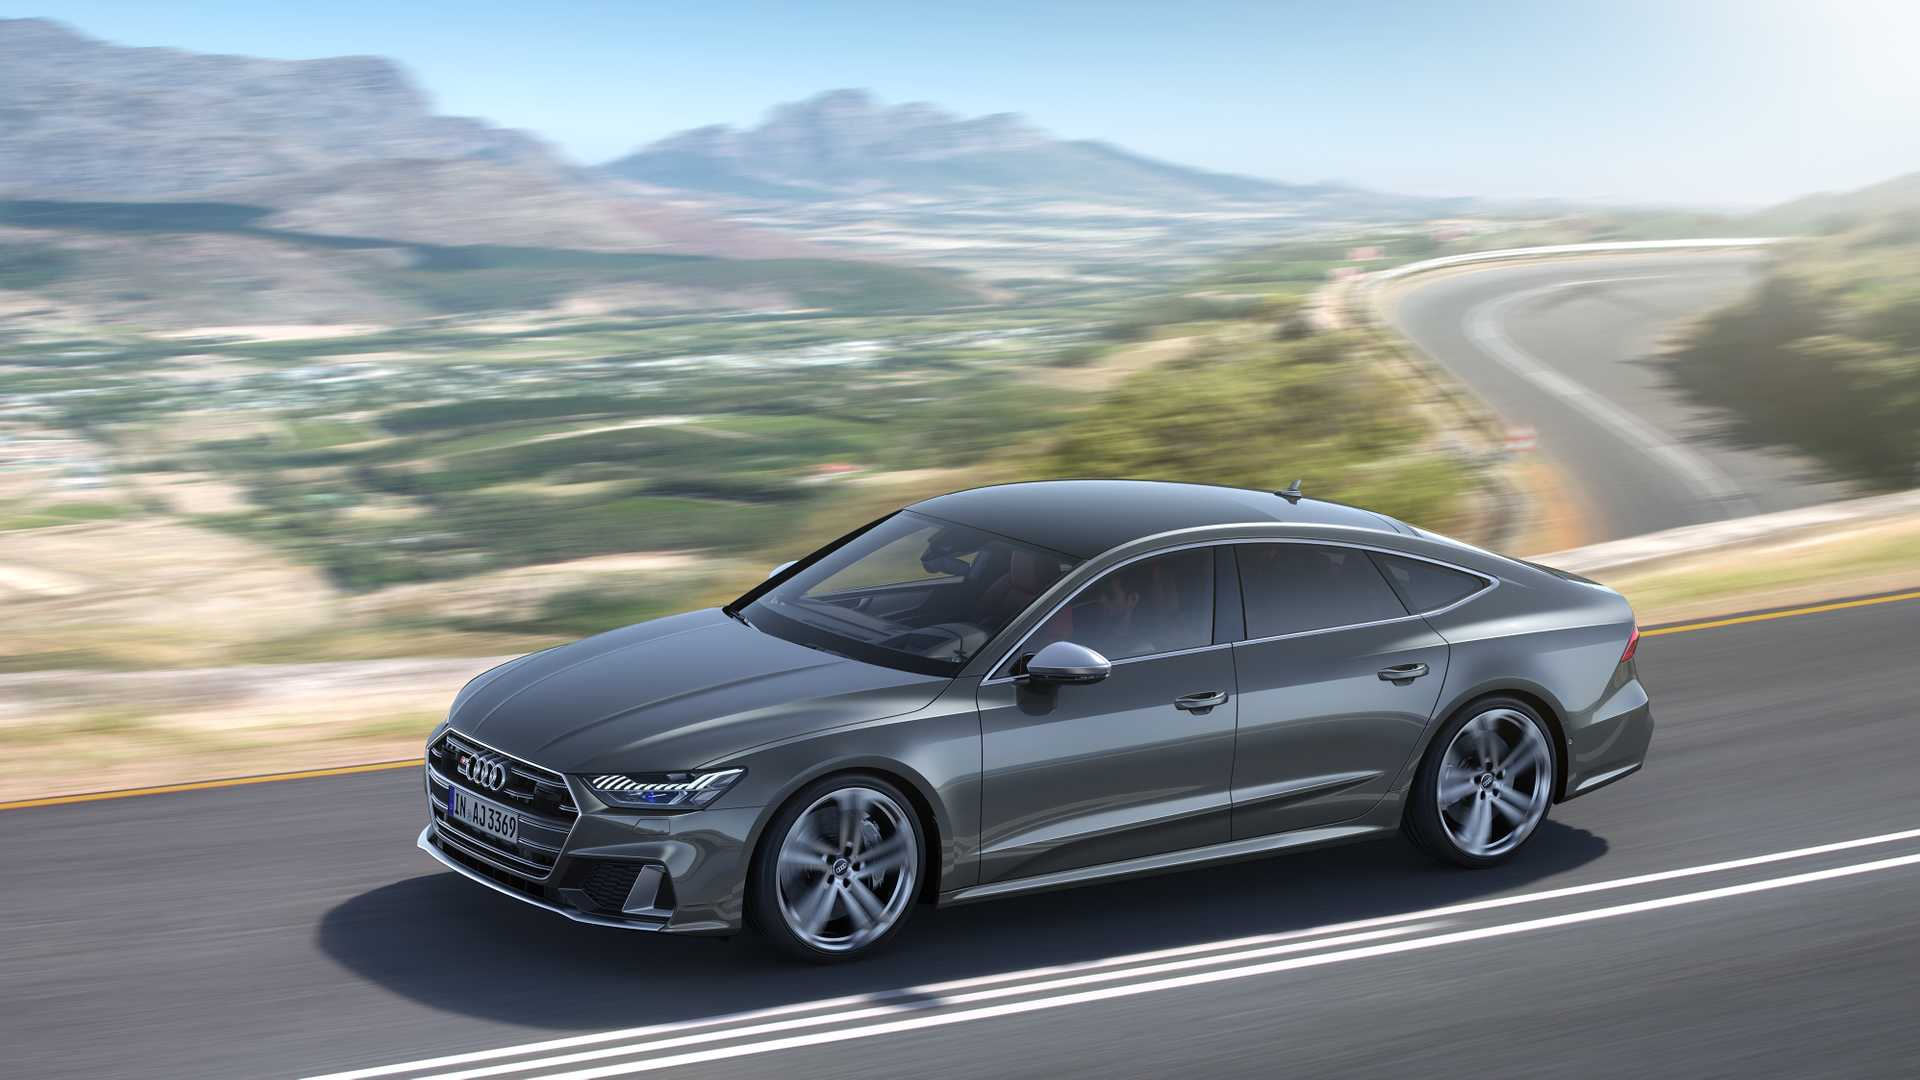 2019 Audi S7 Sportback TDI (Color: Daytona Grey) Front Three-Quarter Wallpapers (2)